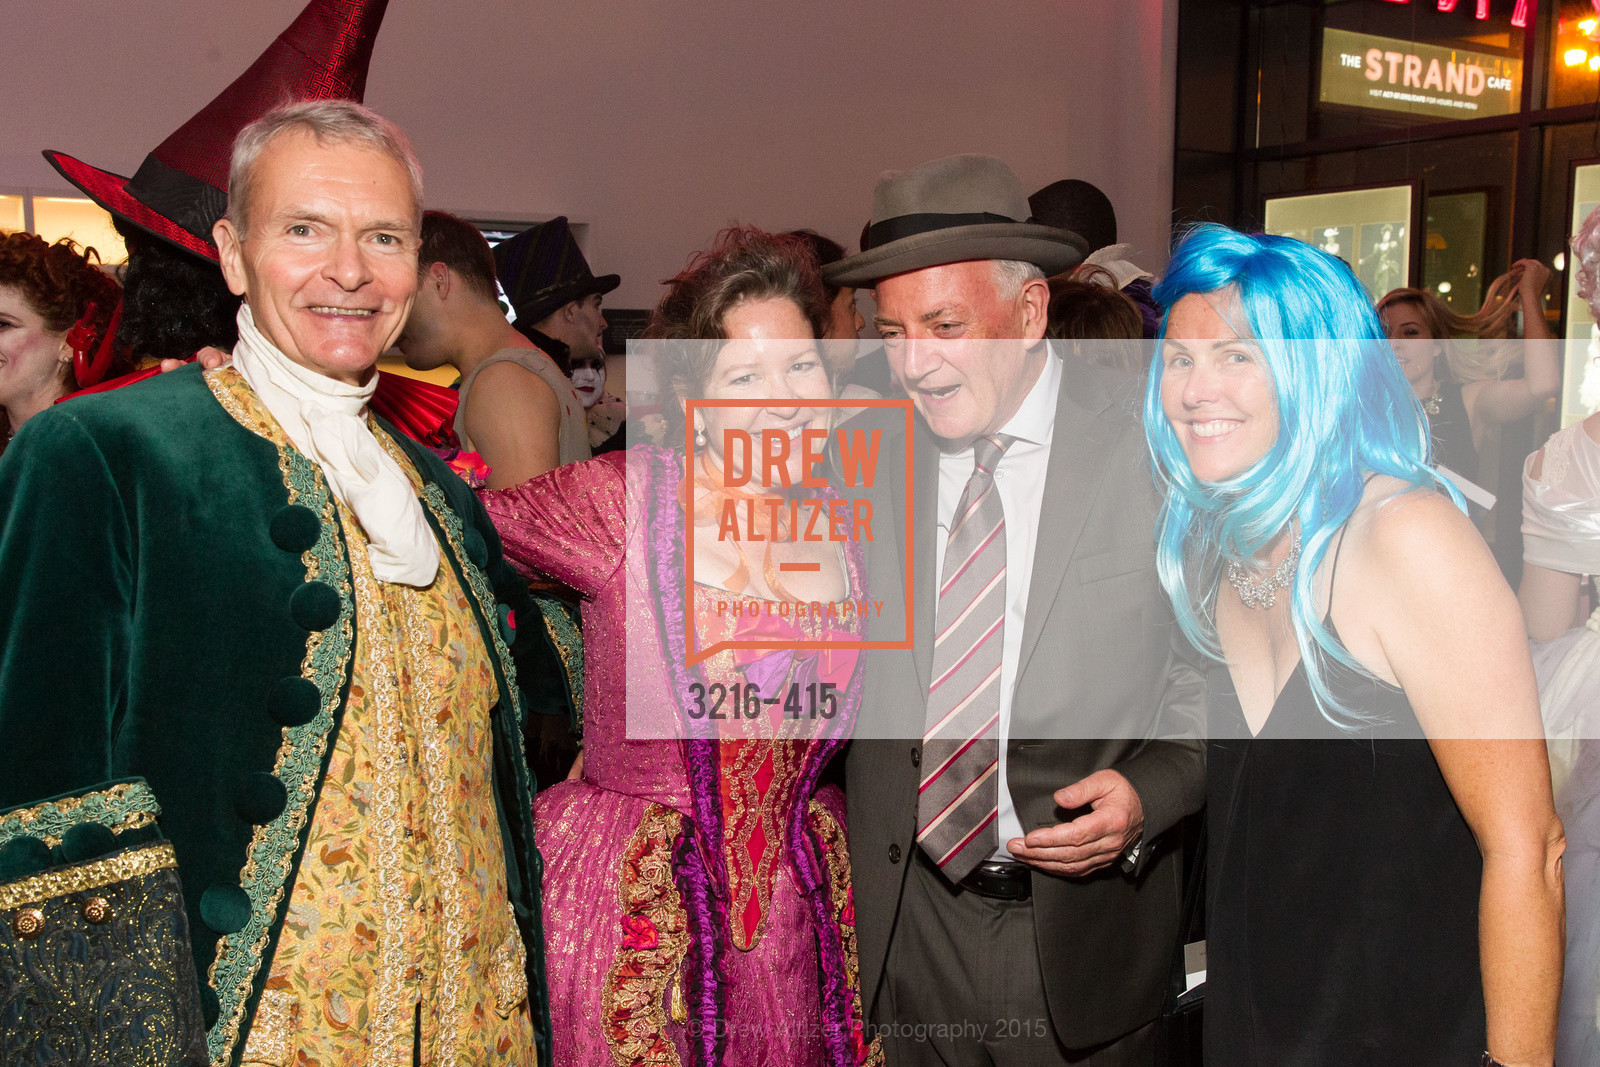 Kirke Hasson, Nancy Sawyer Hasson, Robina Ricciteillo, SPOOKED AT THE STRAND Presented by the American Conservatory Theater, The Strand Theater. 1127 Market Street, October 26th, 2015,Drew Altizer, Drew Altizer Photography, full-service agency, private events, San Francisco photographer, photographer california